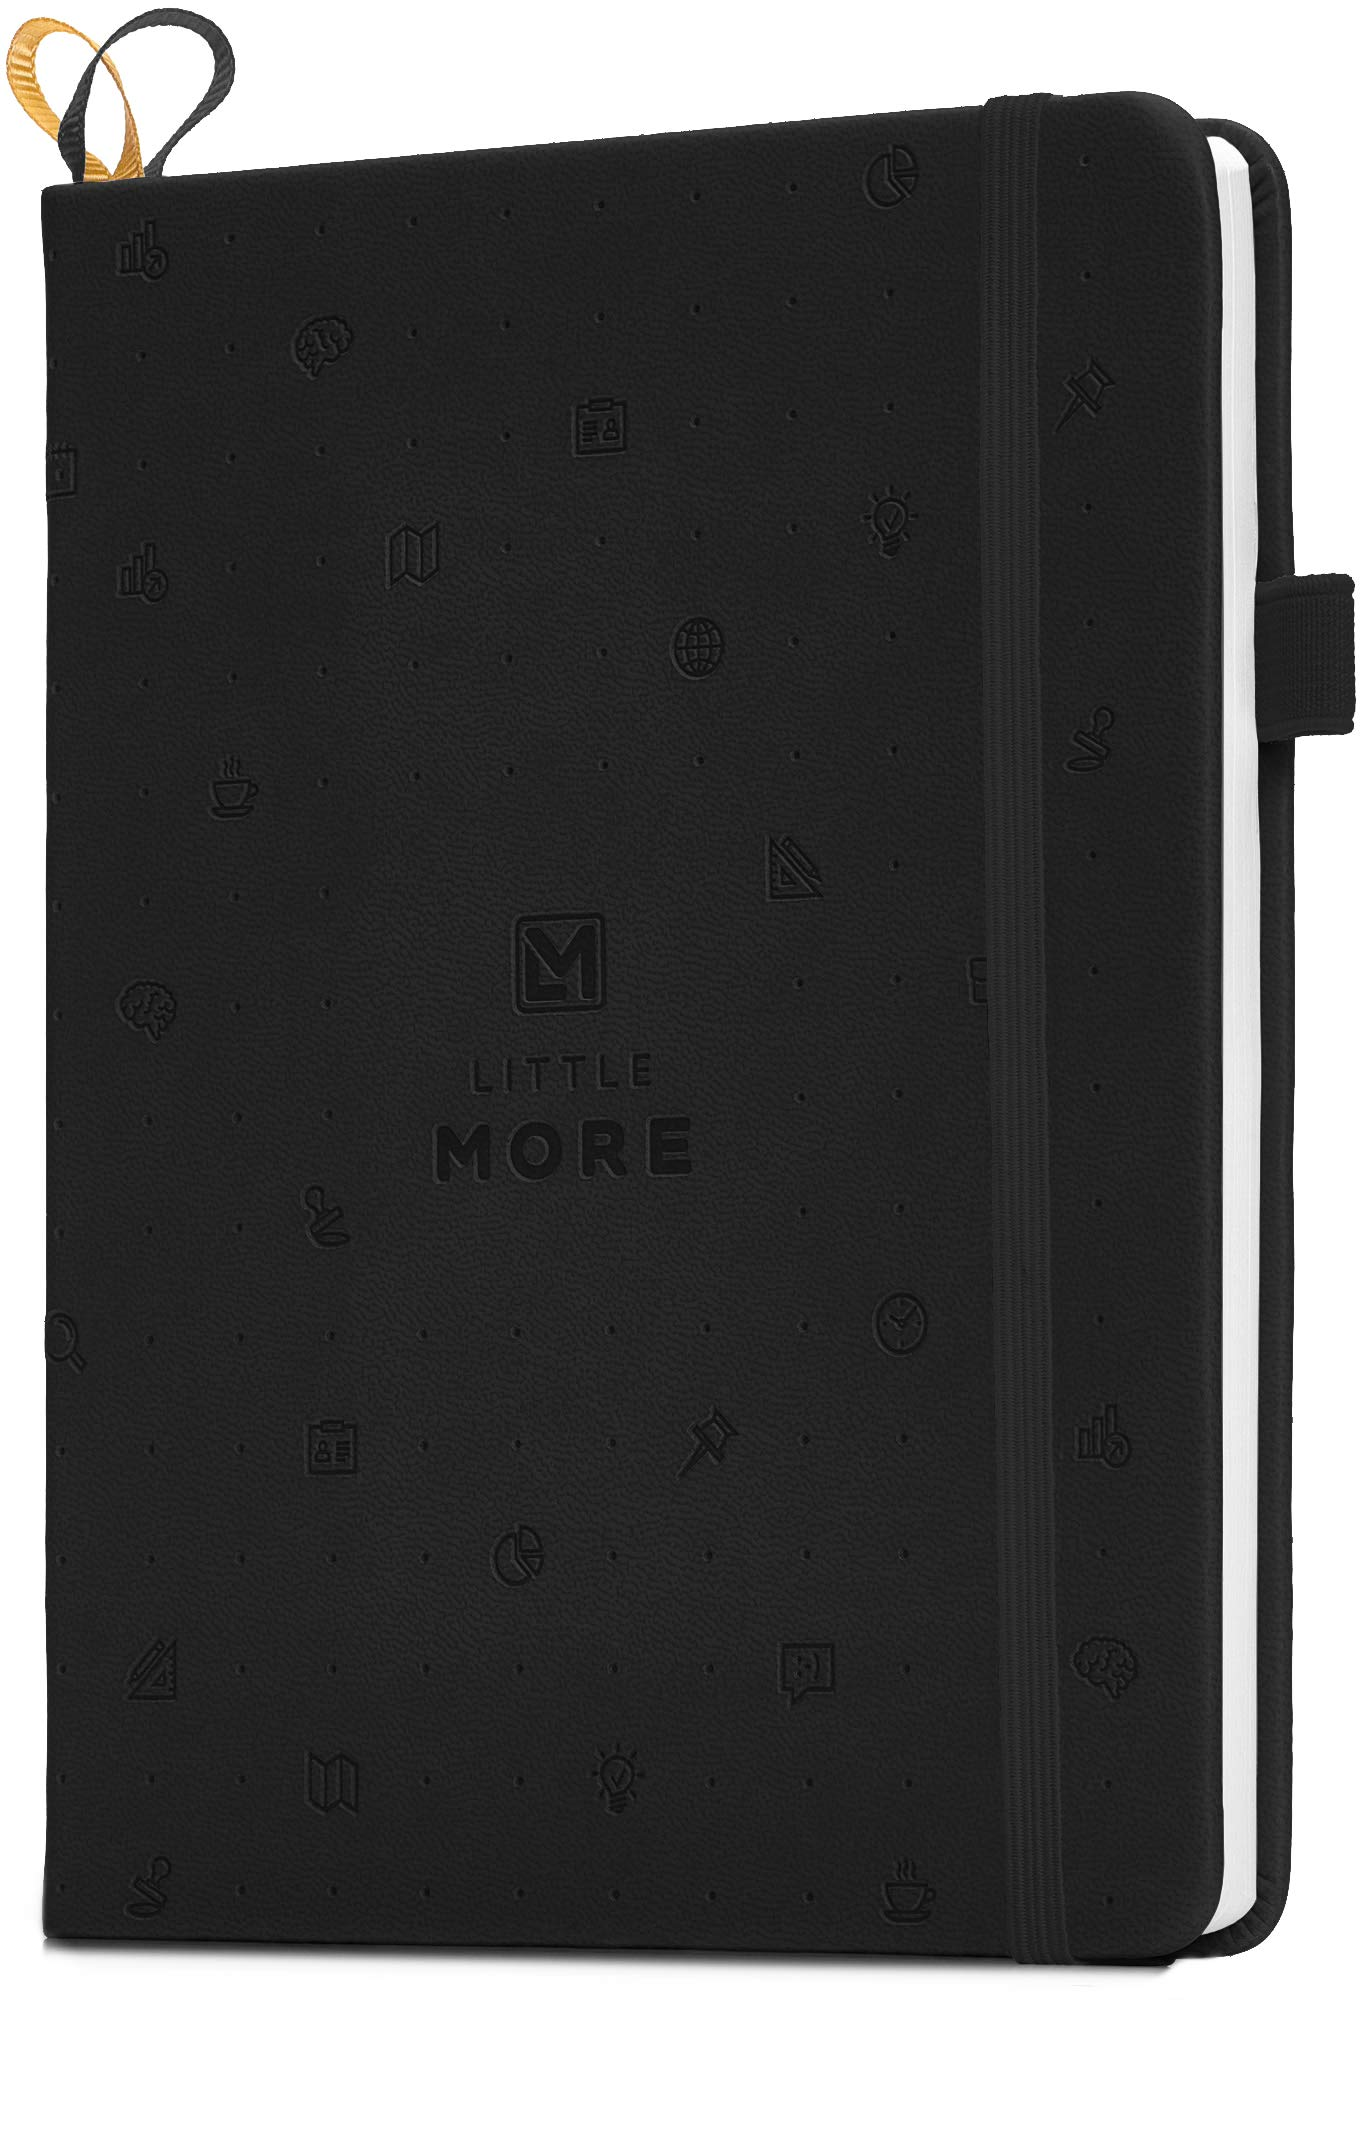 Little More Dot Grid Notebook 4 Colors/Dotted Notebook/Journal Hardcover with Thick Paper - Leather Pocket Bullet Planner (7-5,5) / Small Diary with Numbered Pages & Pen Loop + Stickers (Black)